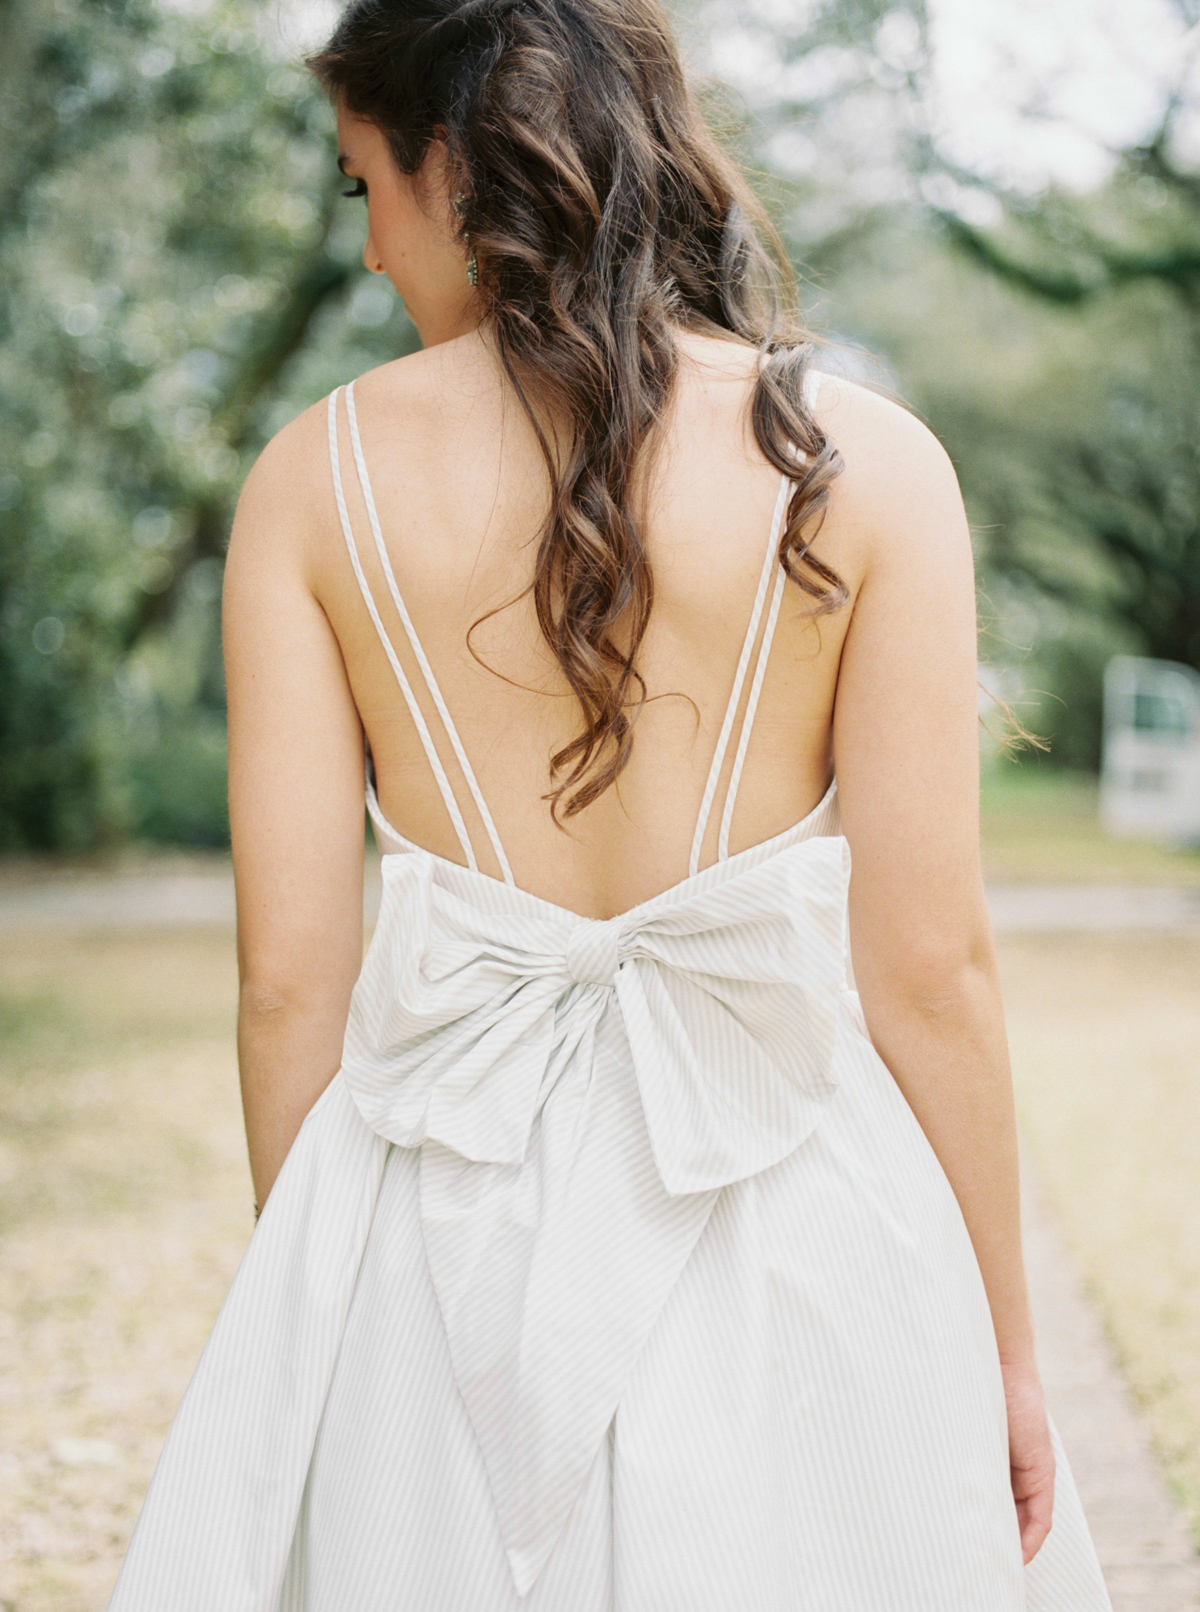 Coupla sneak peeks of my favorite professional project -- a styled shoot in Charleston with  Amy Nicole  &  Karis Floral Design . Gorg gown by  Modern Trousseau , rentals by  EventHaus , hair & makeup by  Studio M Salon , all at  Legare Waring House .